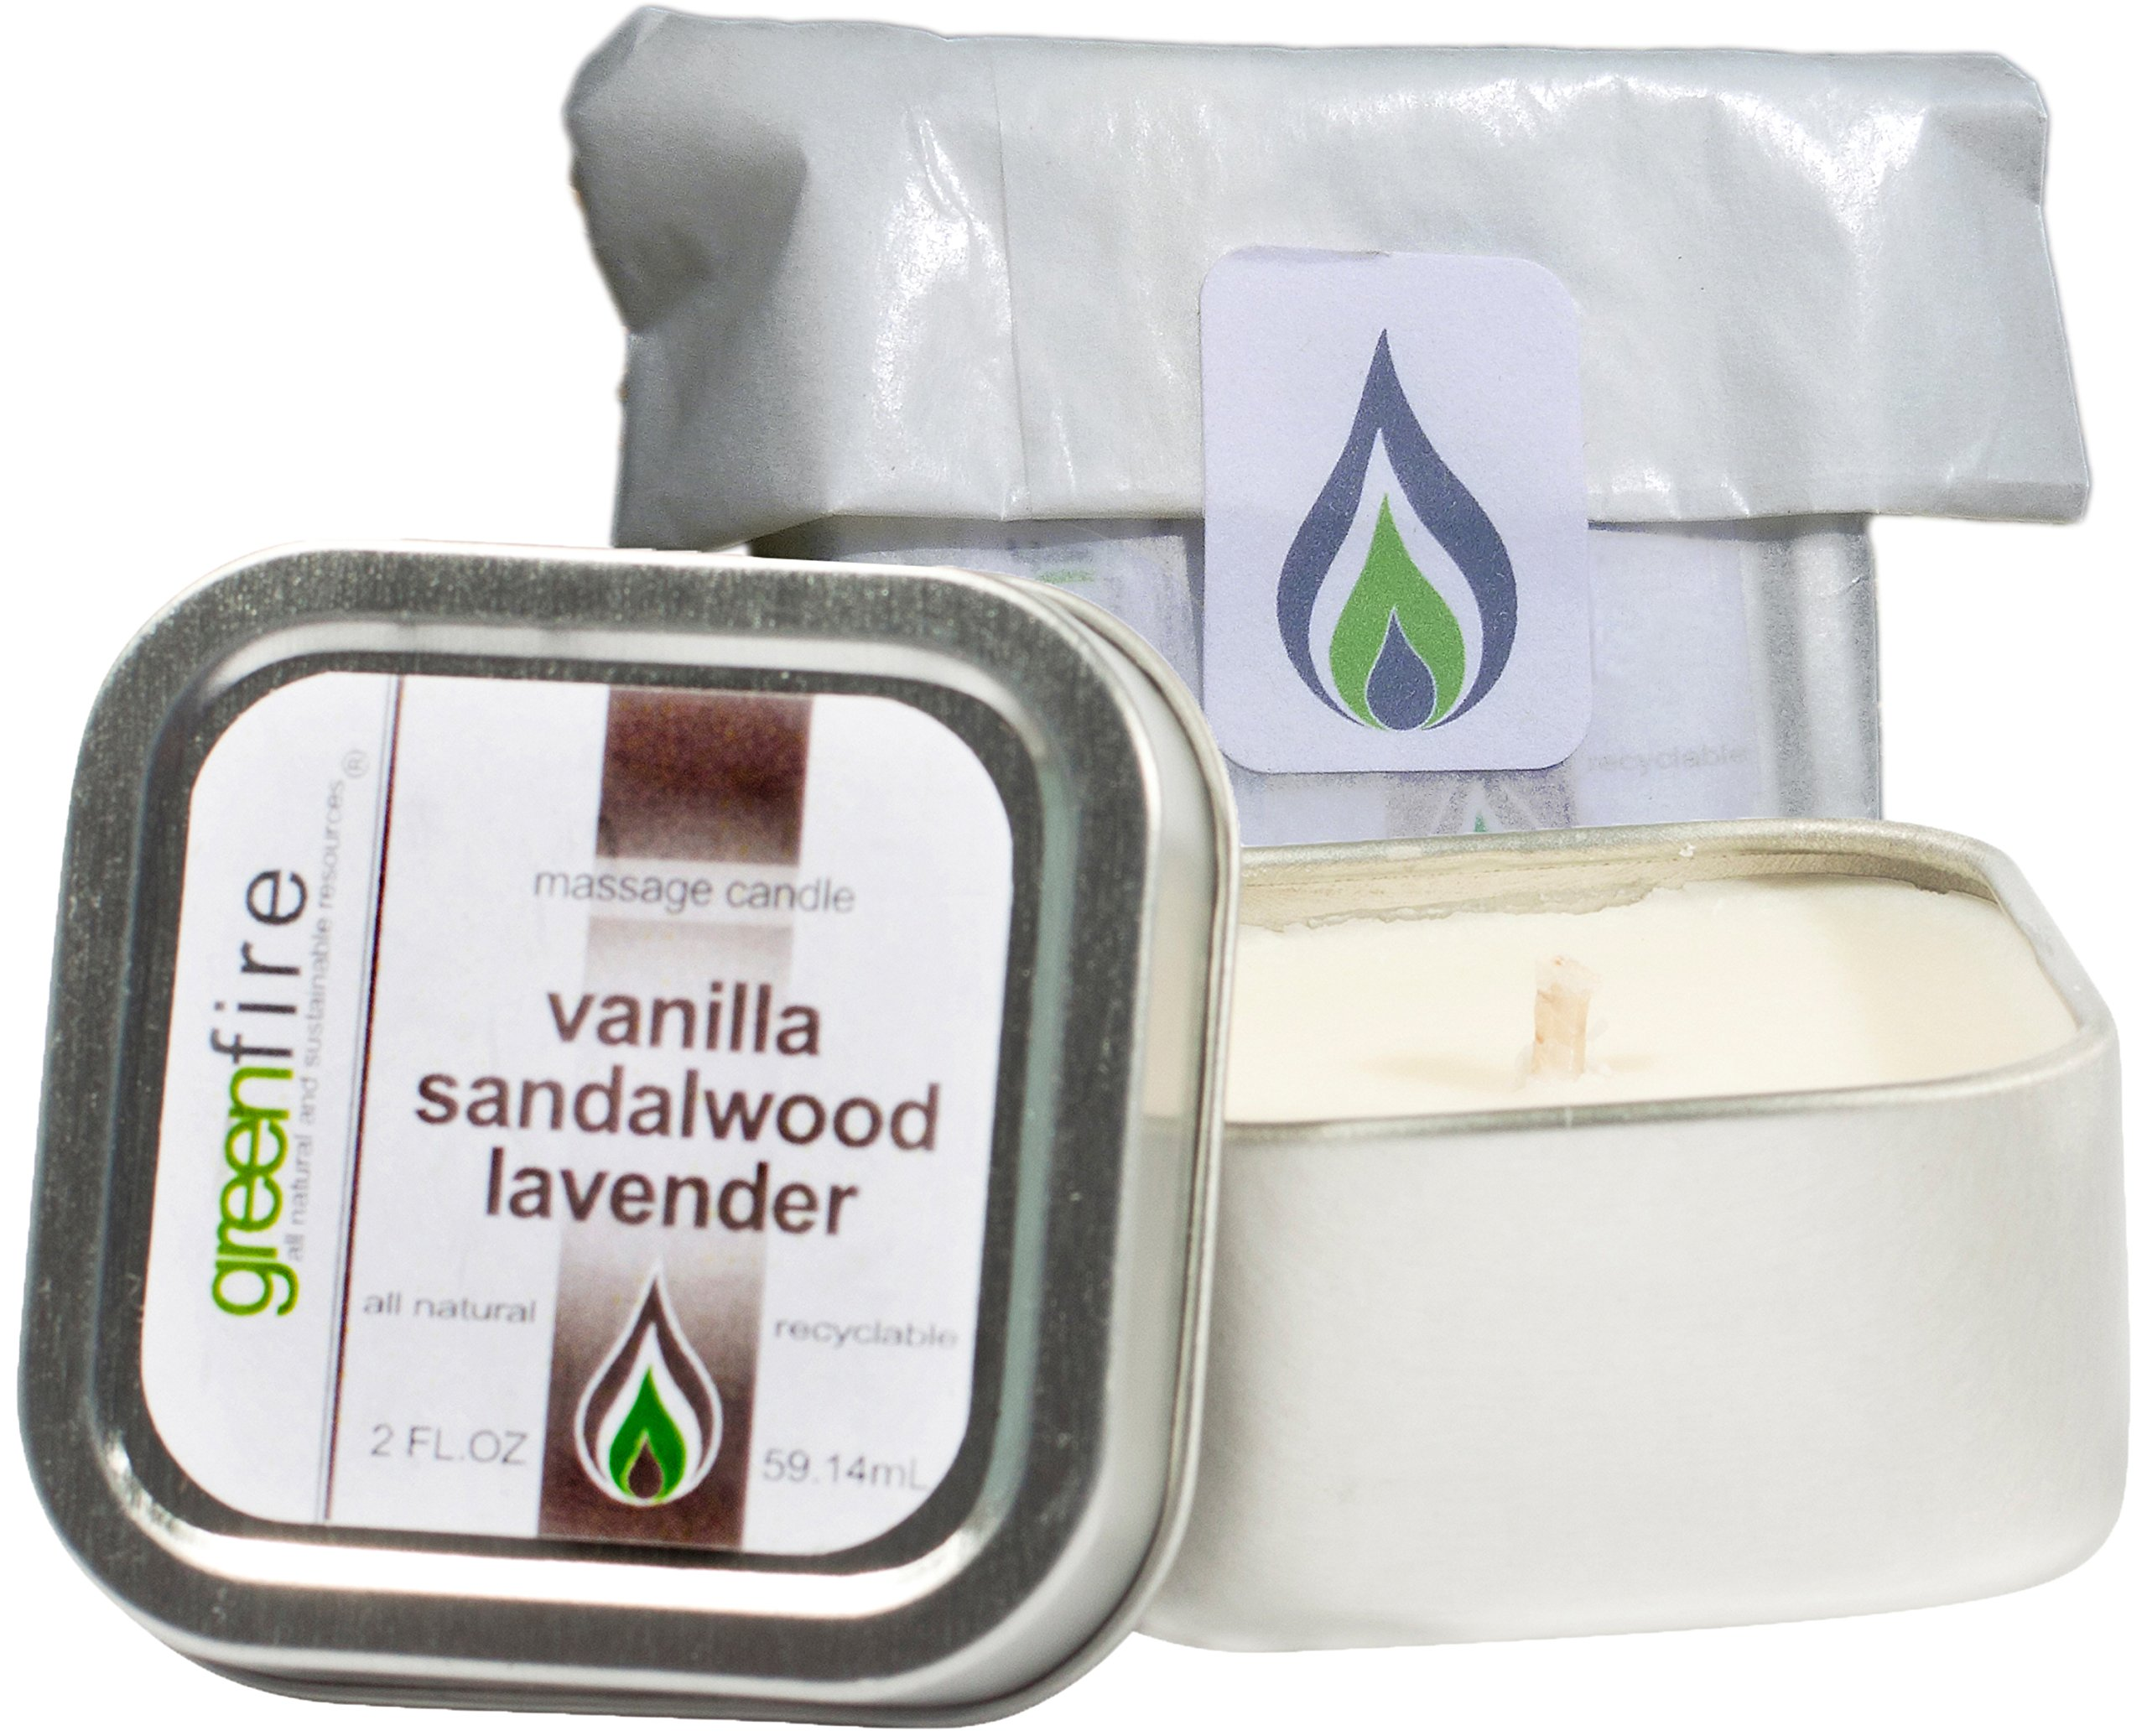 Greenfire All Natural Massage Oil Candle, Lavender Sandalwood Vanilla, Travel Size 2 Fluid Ounce